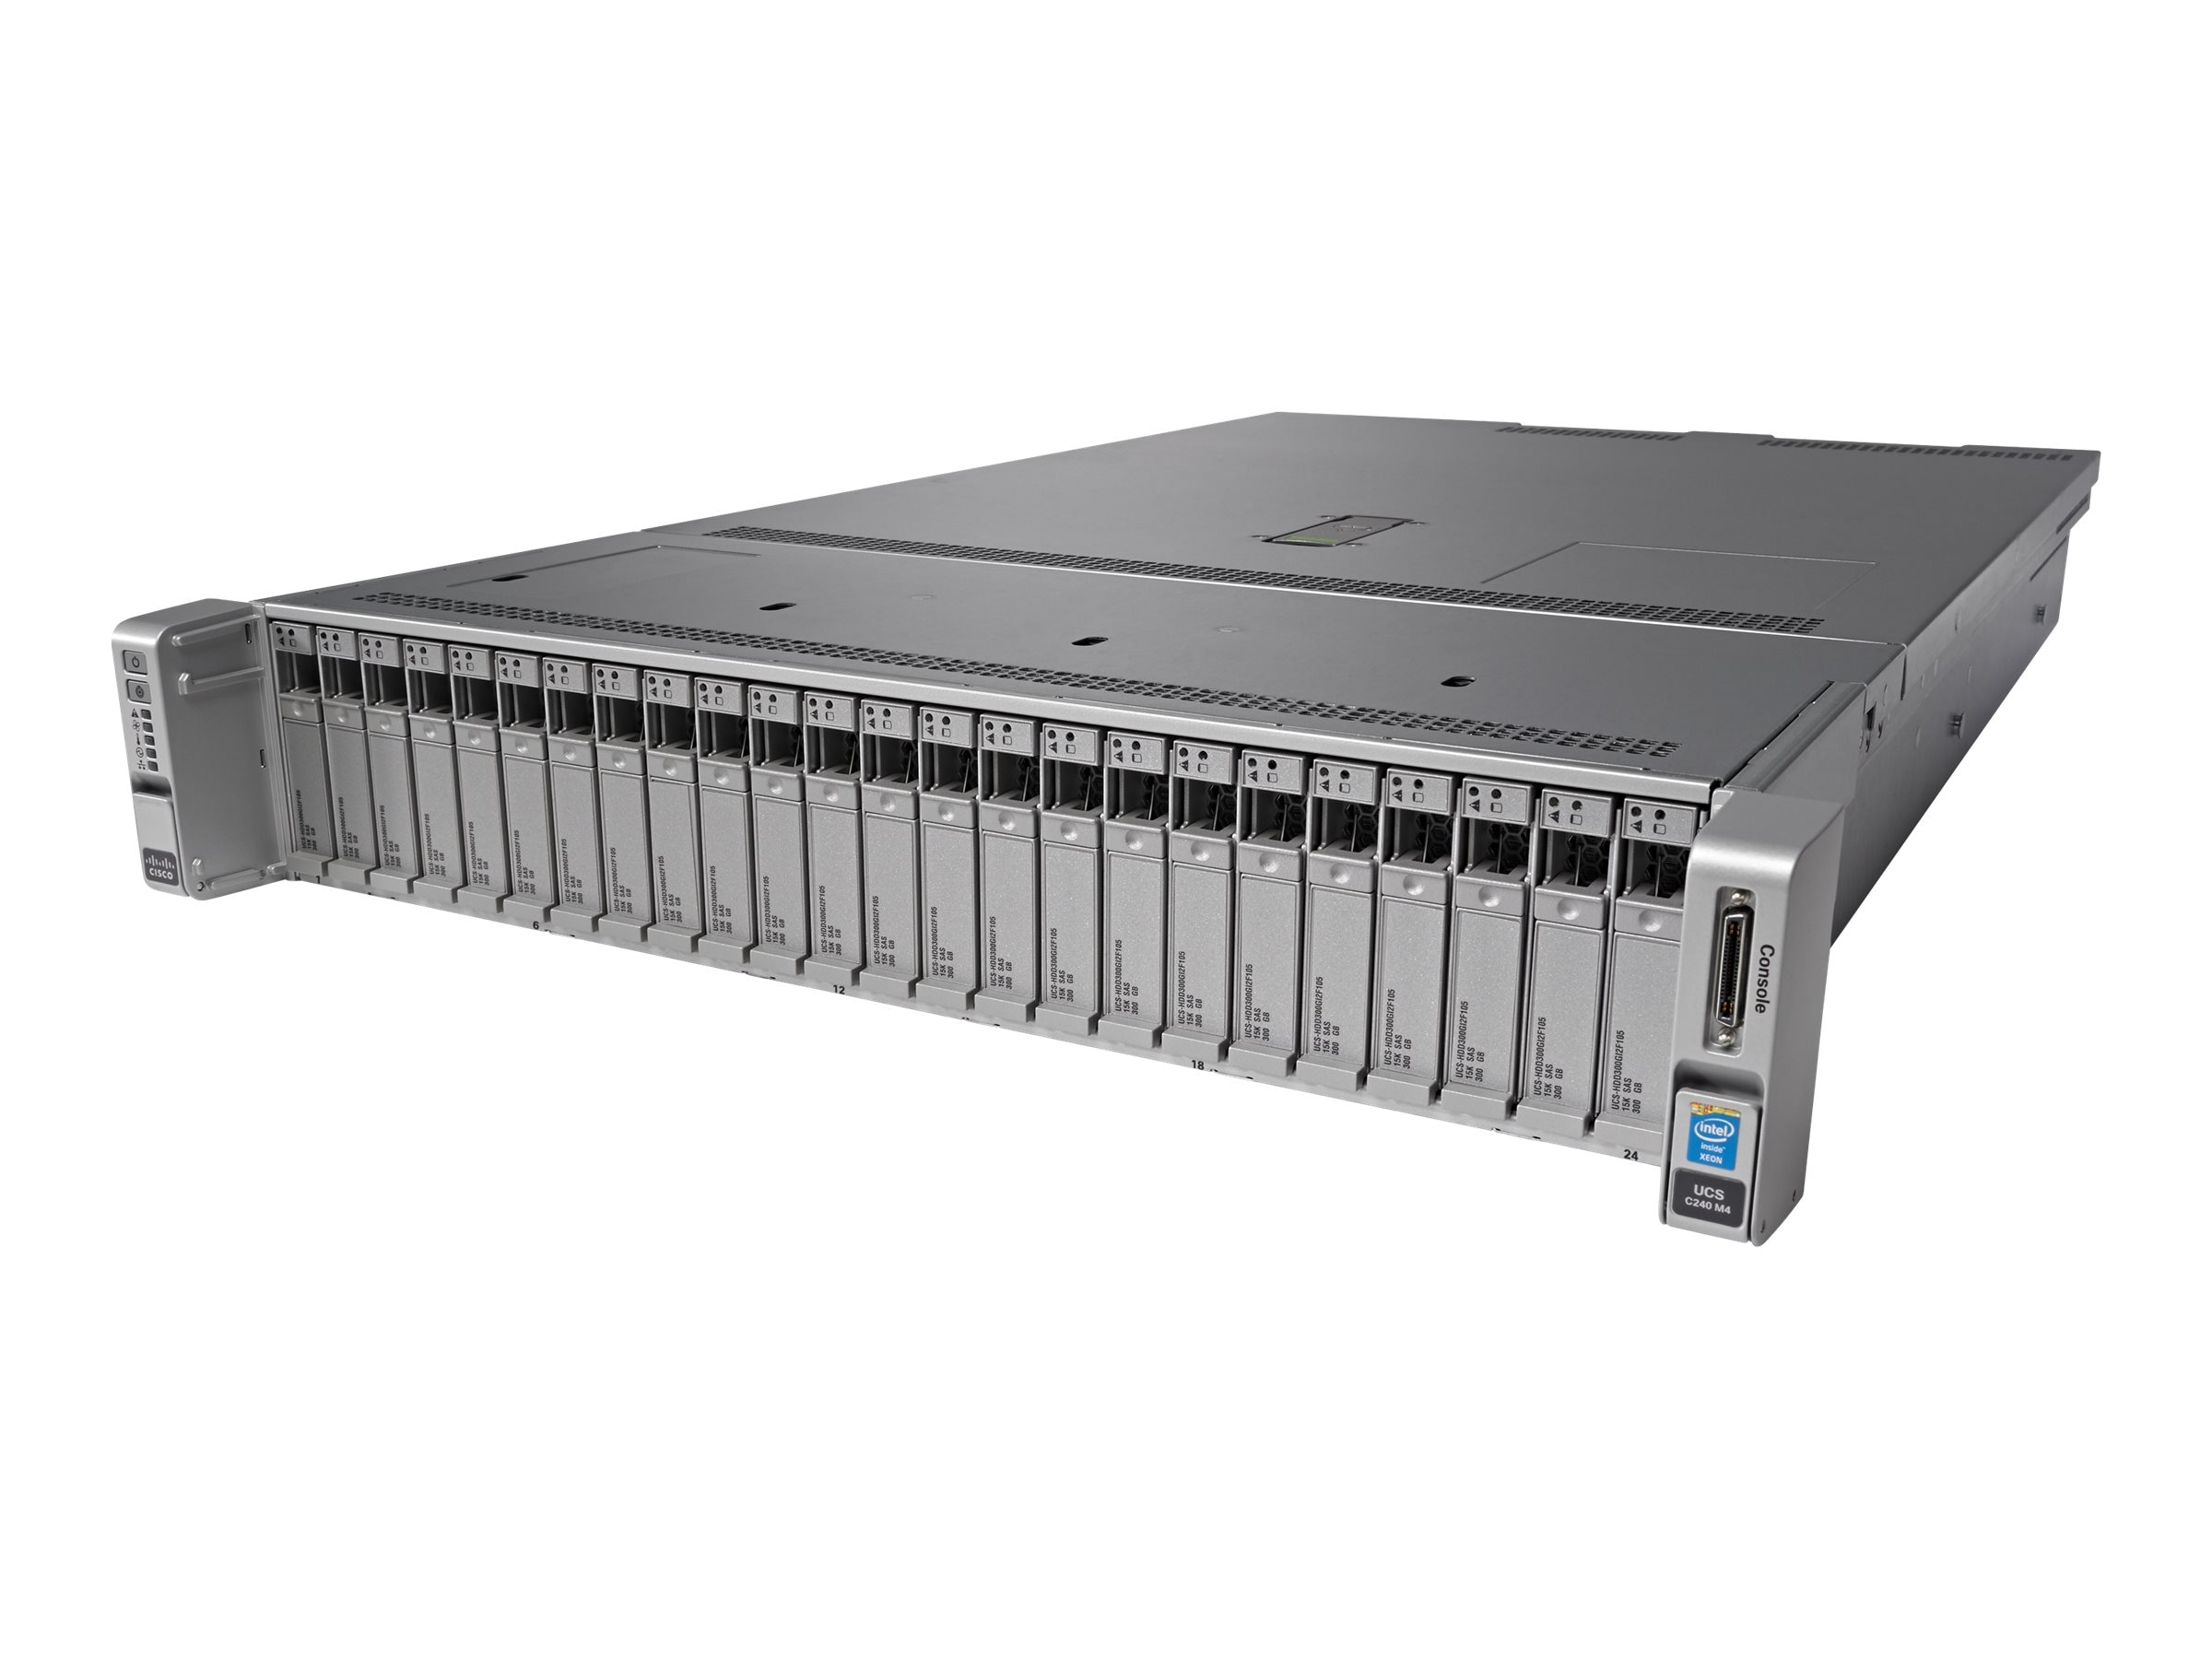 Cisco UCS C240 M4S E5-2620 v4 16GB MRAID 2x1200W 32GB SD Rails